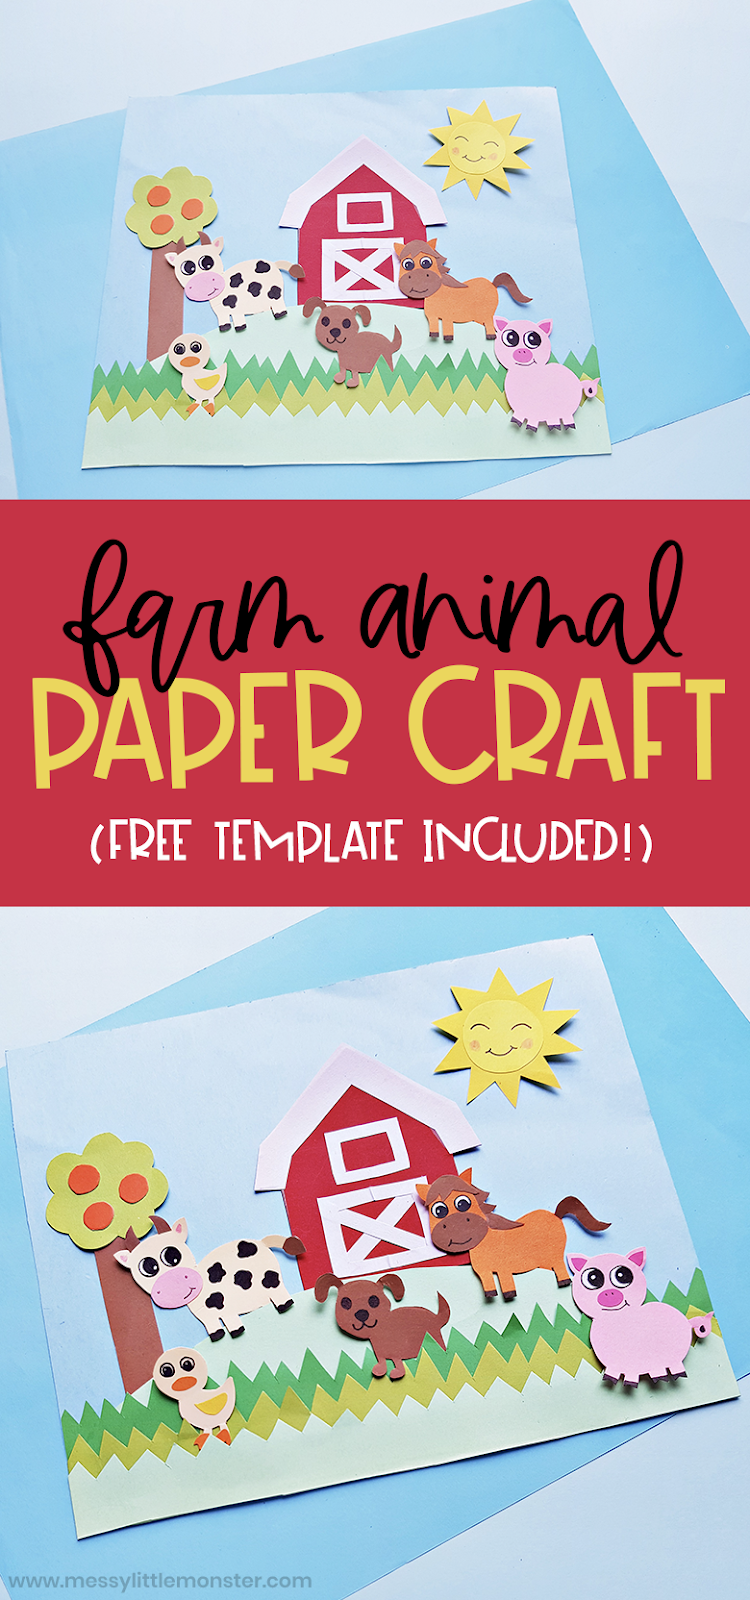 Farm animal craft for kids with printable farm animal template.